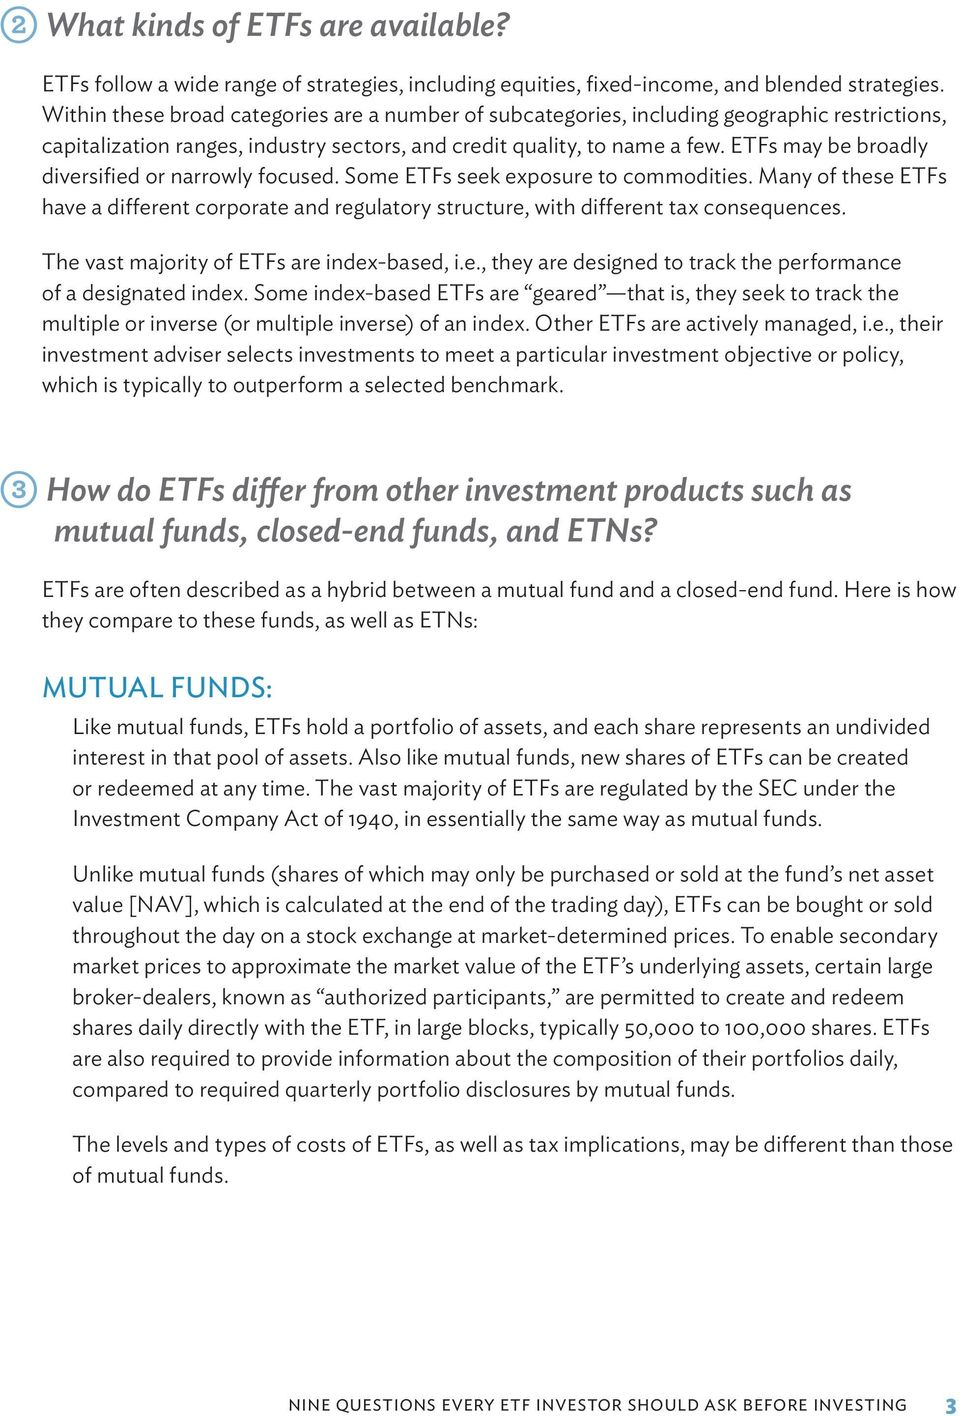 ETFs may be broadly diversified or narrowly focused. Some ETFs seek exposure to commodities. Many of these ETFs have a different corporate and regulatory structure, with different tax consequences.